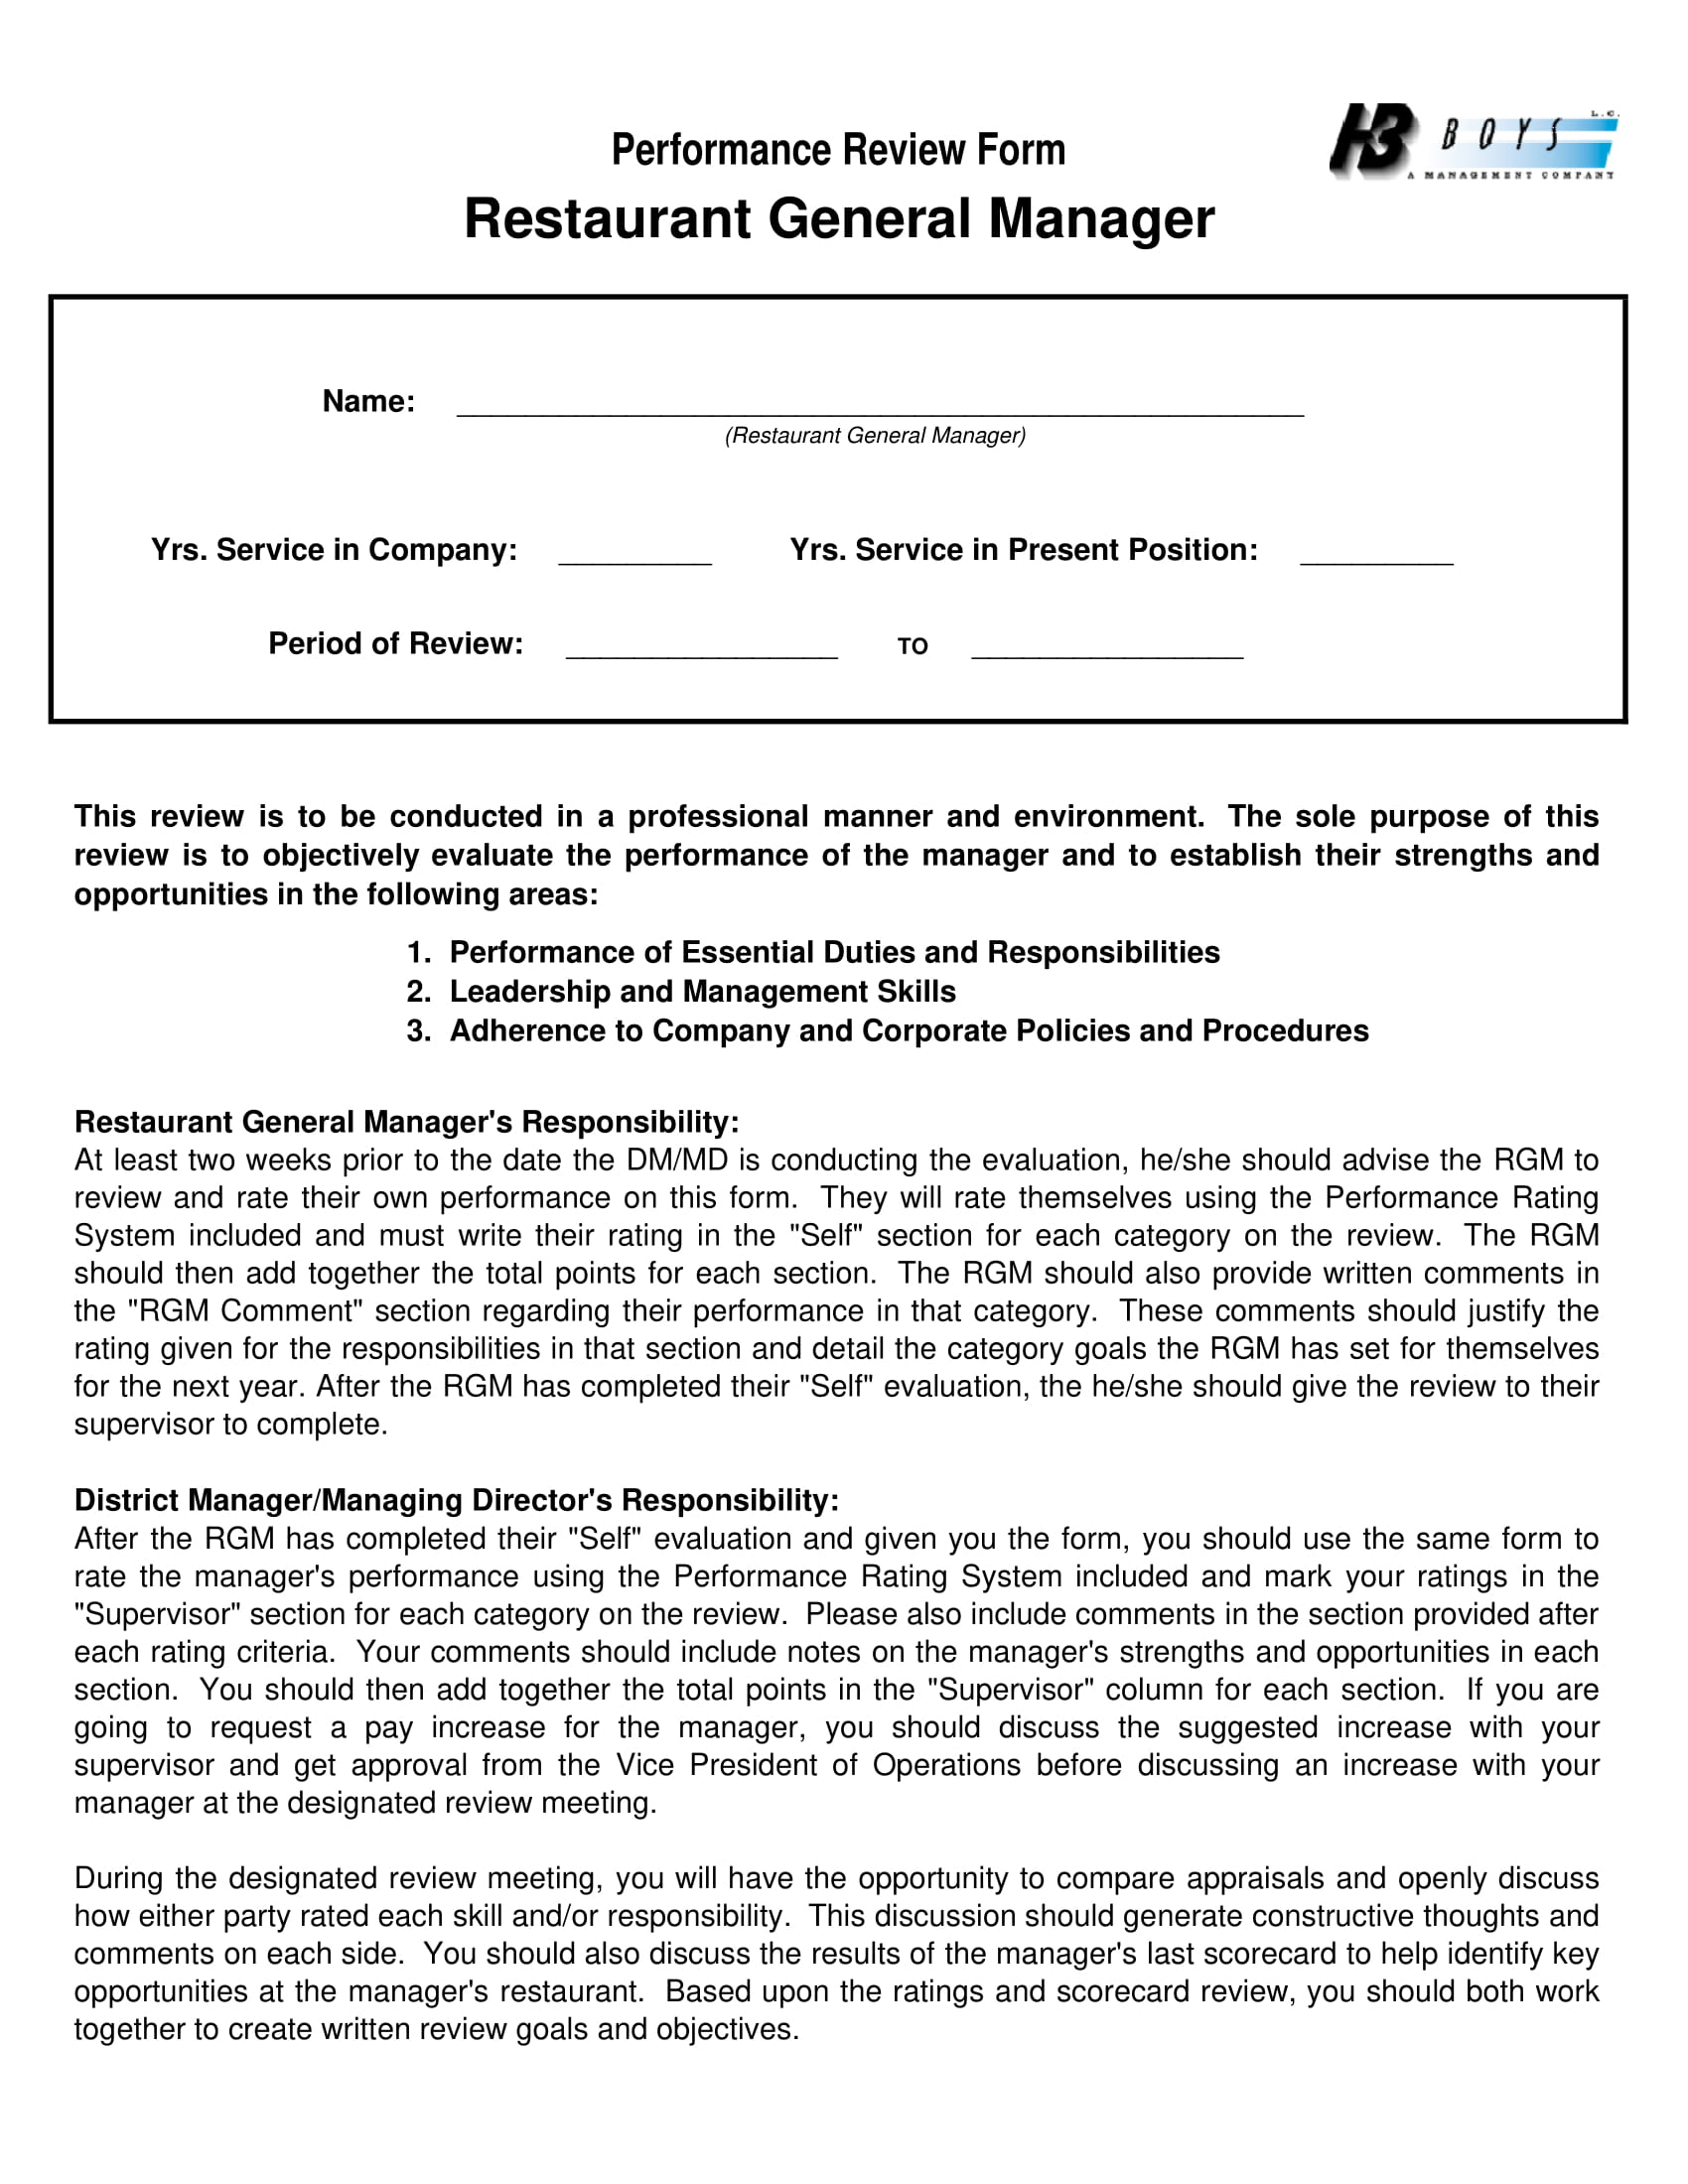 restaurant general manager performance evaluation form 1